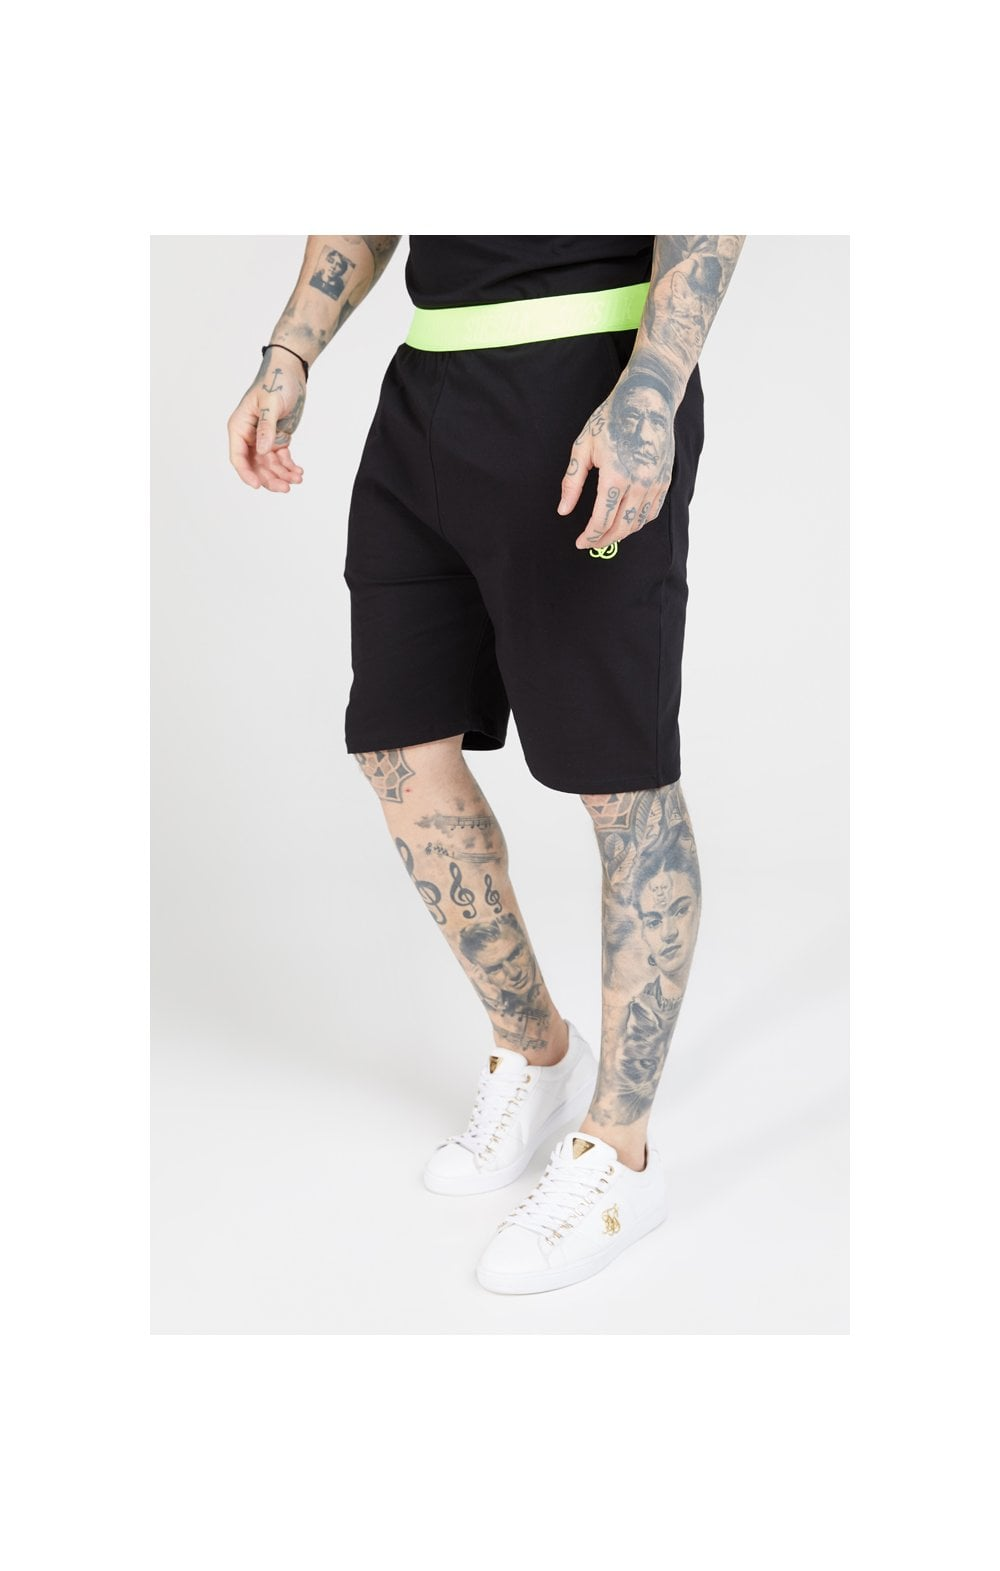 SikSilk Relaxed Fit Shorts - Black & Neon Yellow MEN SIZES BOTTOM: Extra Small 28in